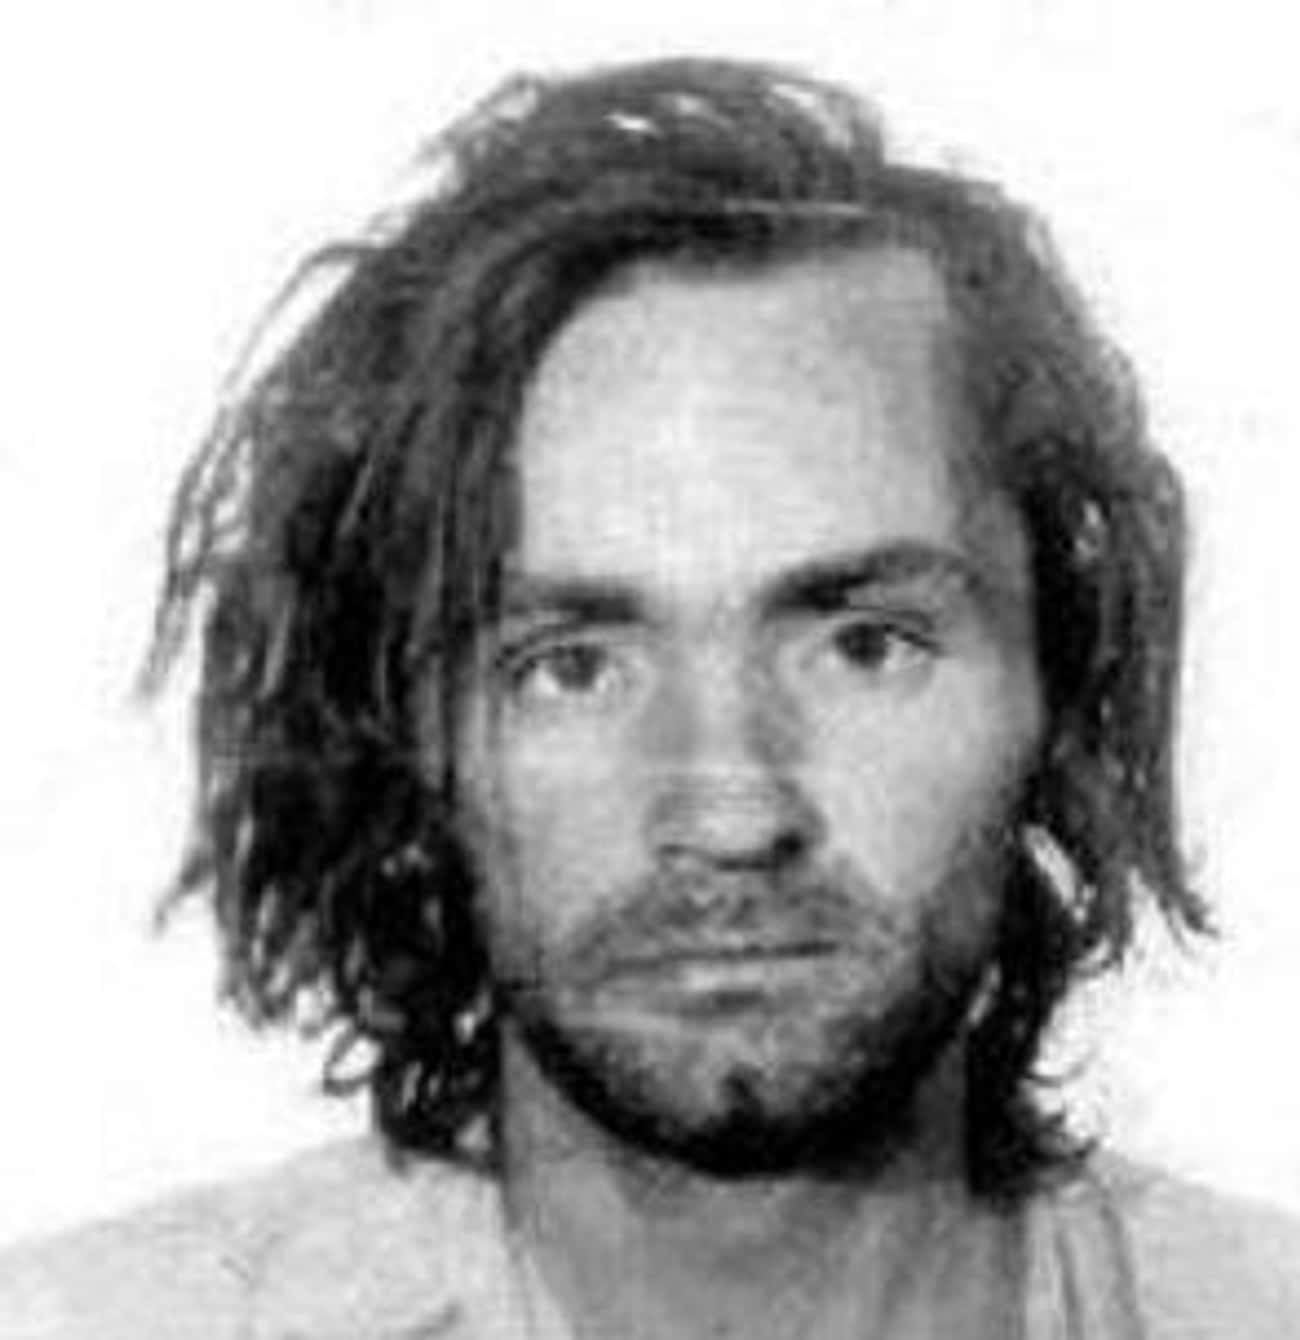 Charles Manson Used Bizarre Oc is listed (or ranked) 3 on the list Los Angeles Has A History With The Occult Unlike Any Other U.S. City